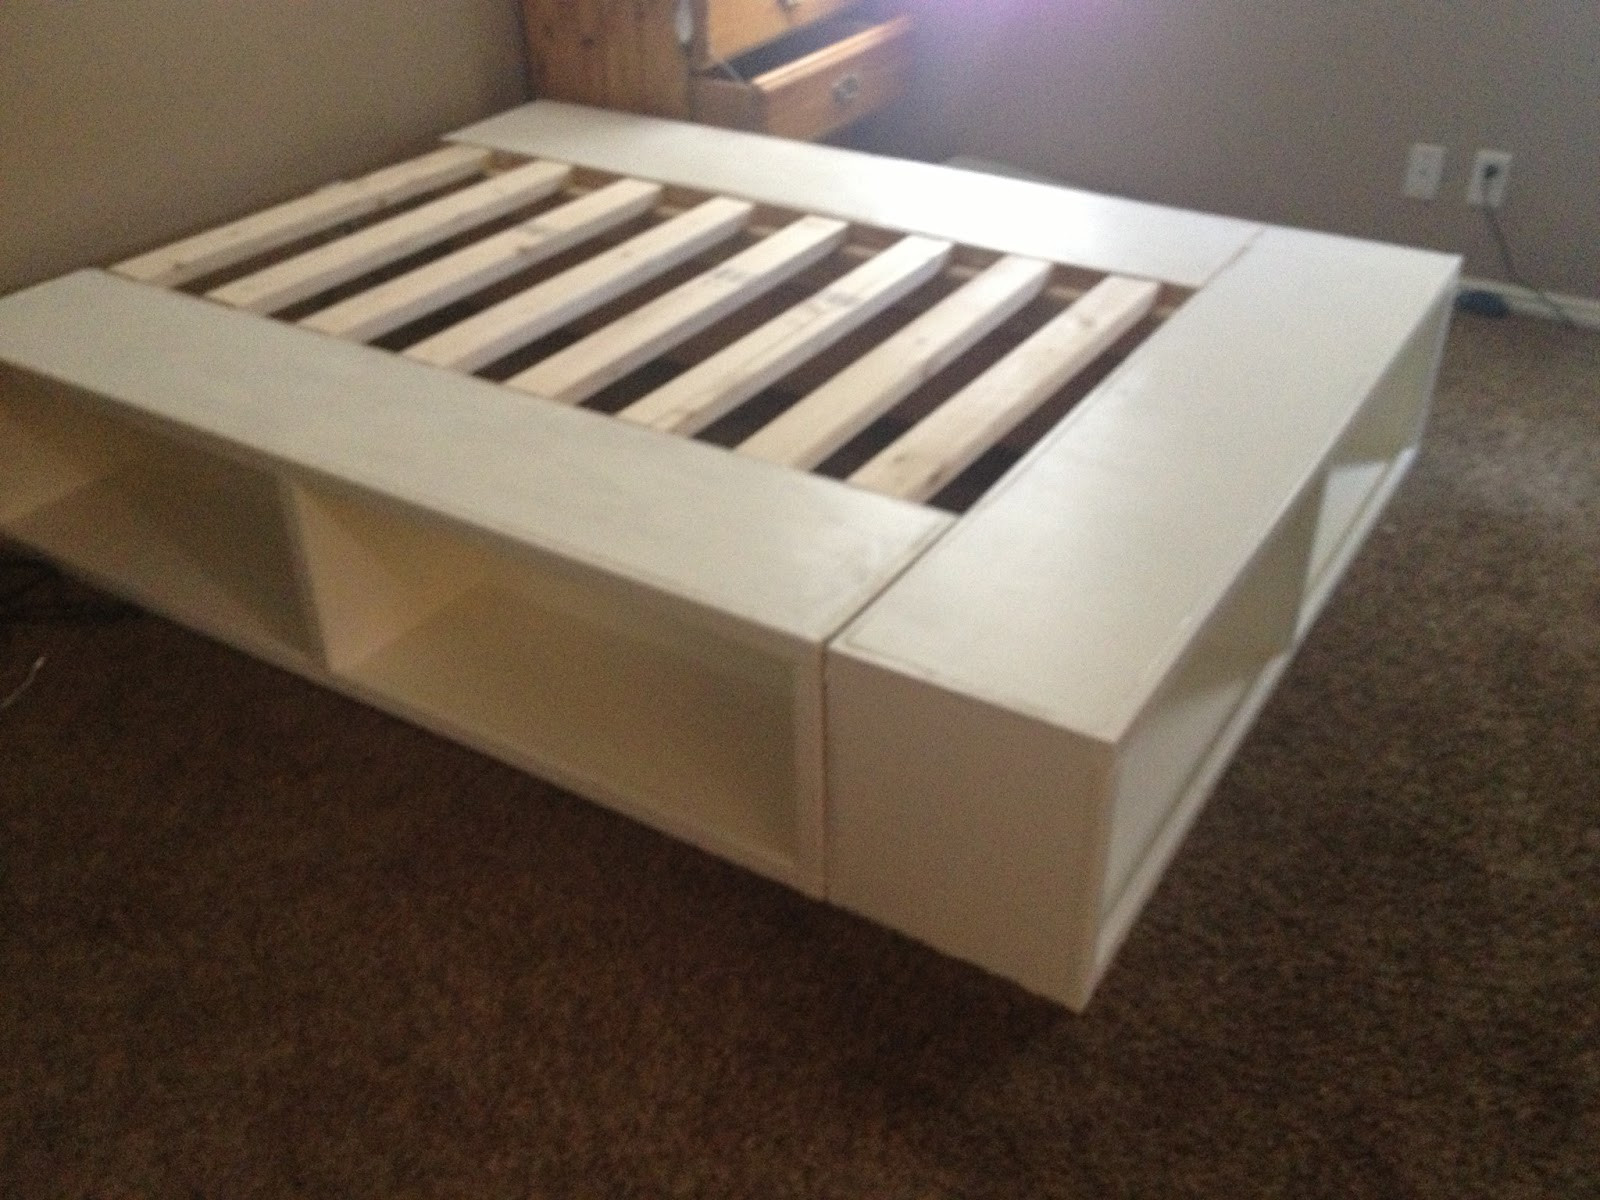 Best ideas about DIY Bed Frame Plans . Save or Pin DIY Storage Bed Now.